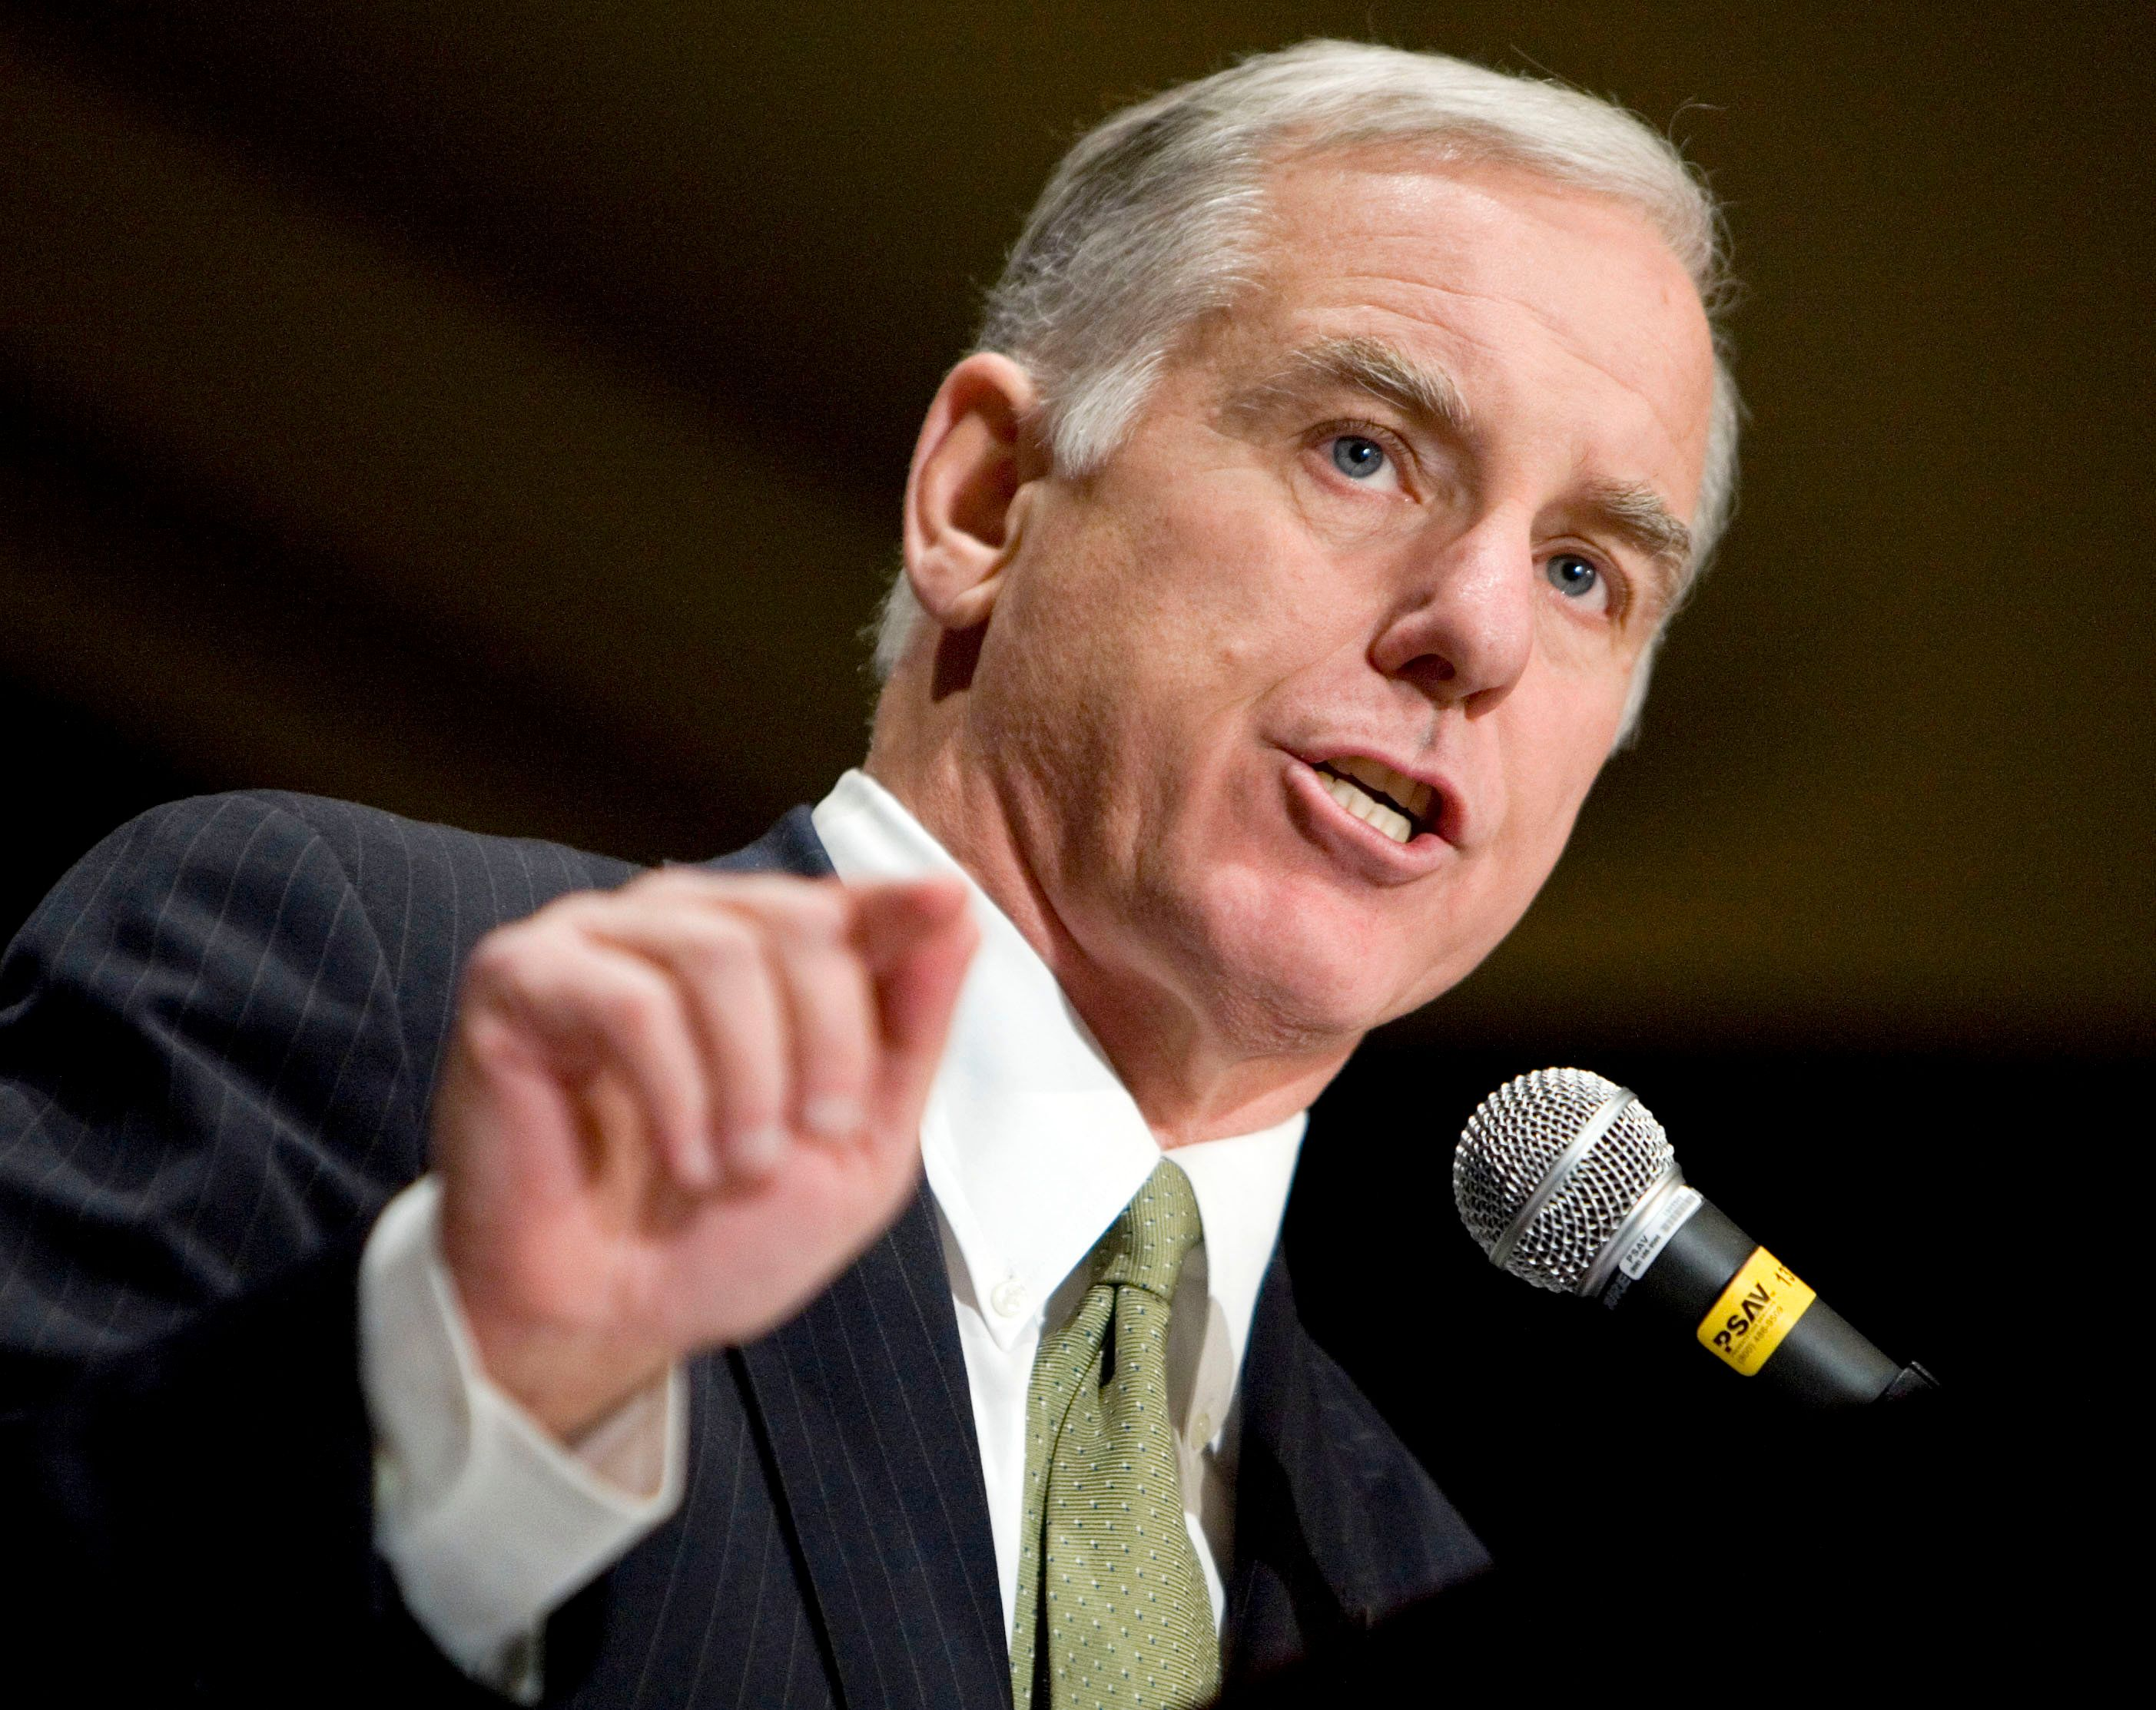 Democratic National Committee Chairman Howard Dean speaks at the Democratic National Committee annual fall meeting in Vienna, Virginia, November 30, 2007.     REUTERS/Joshua Roberts     (UNITED STATES)